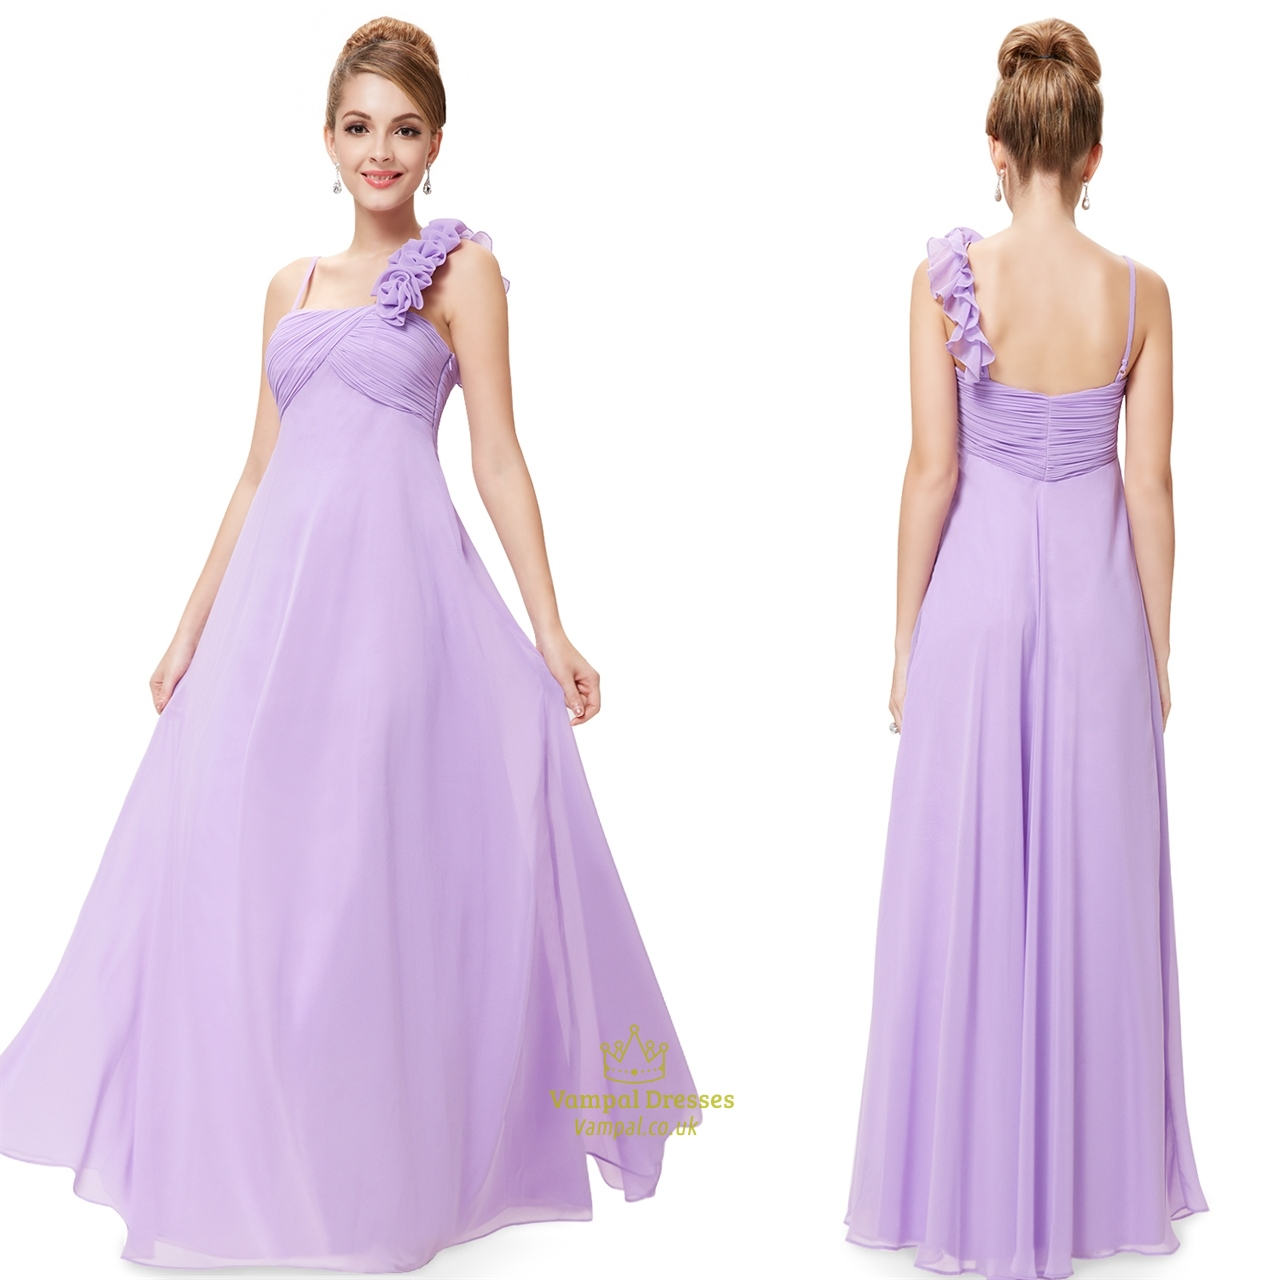 Bridesmaid Dresses: Lavender Chiffon One Shoulder Bridesmaid Dresses Long,One